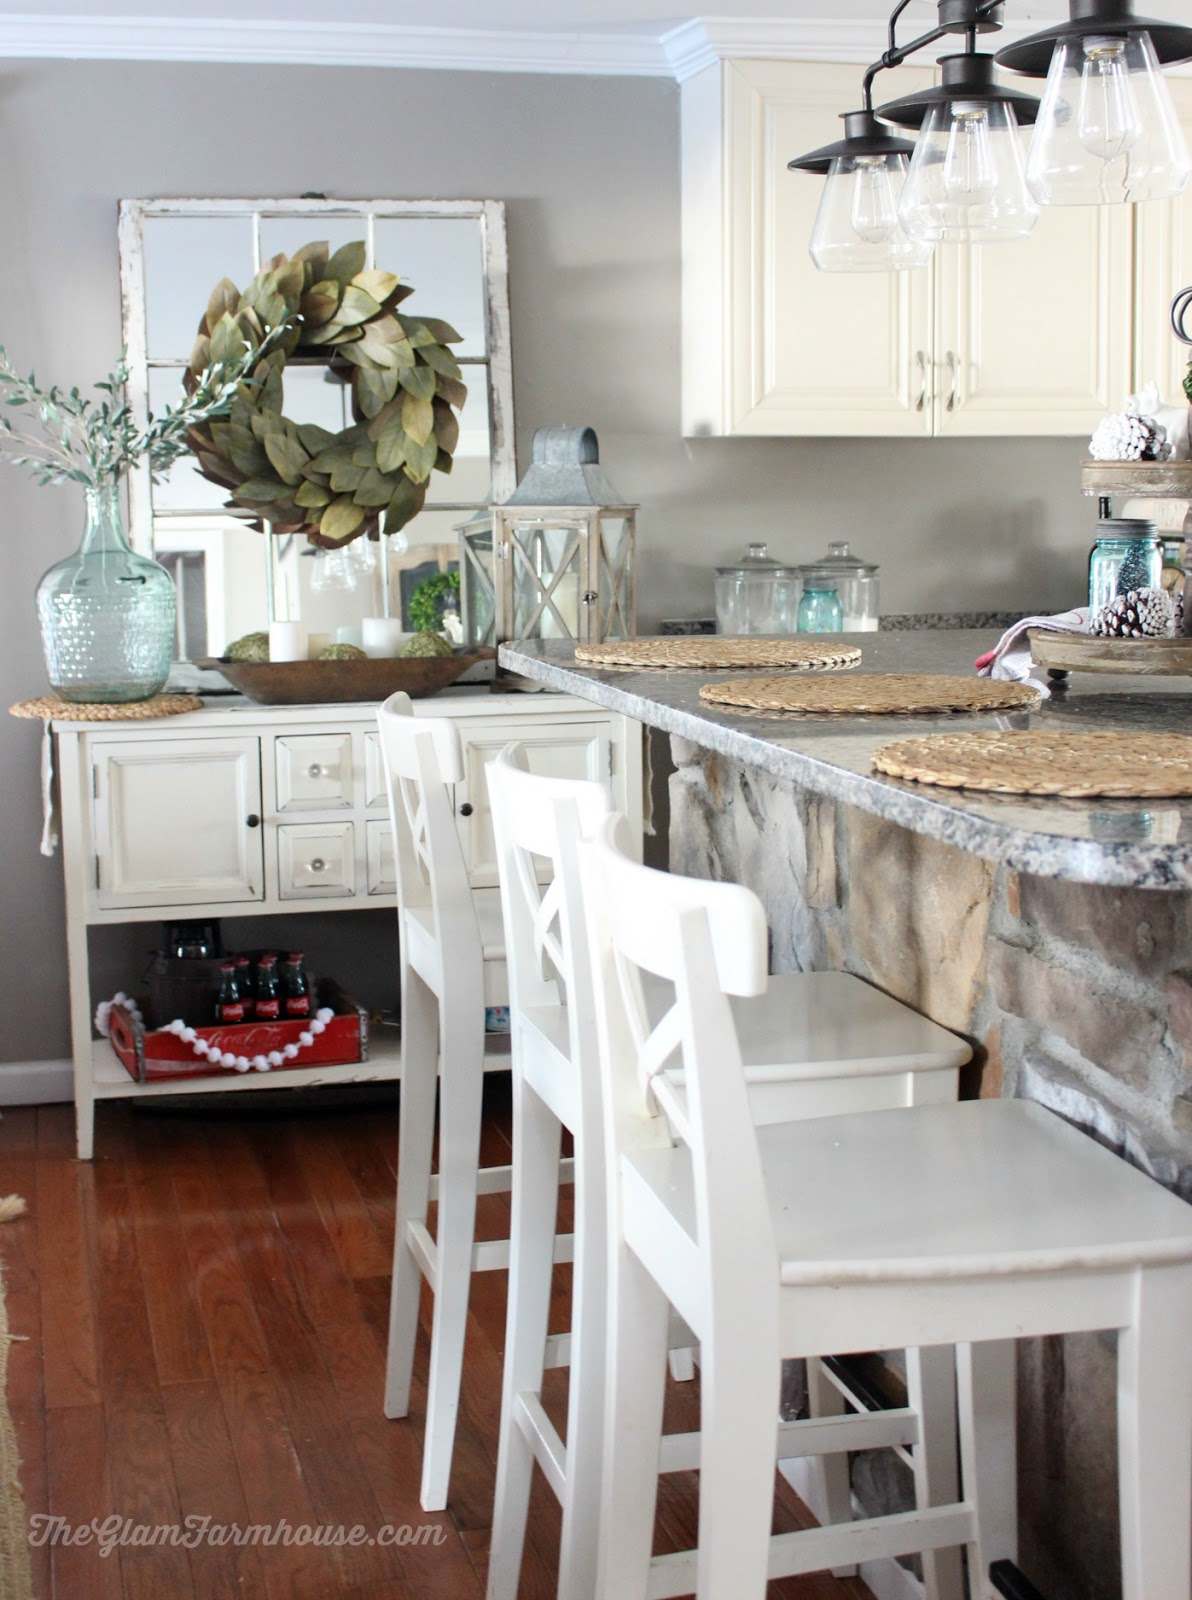 The Glam Farmhouse Rustic Glam Dining Room Tour With